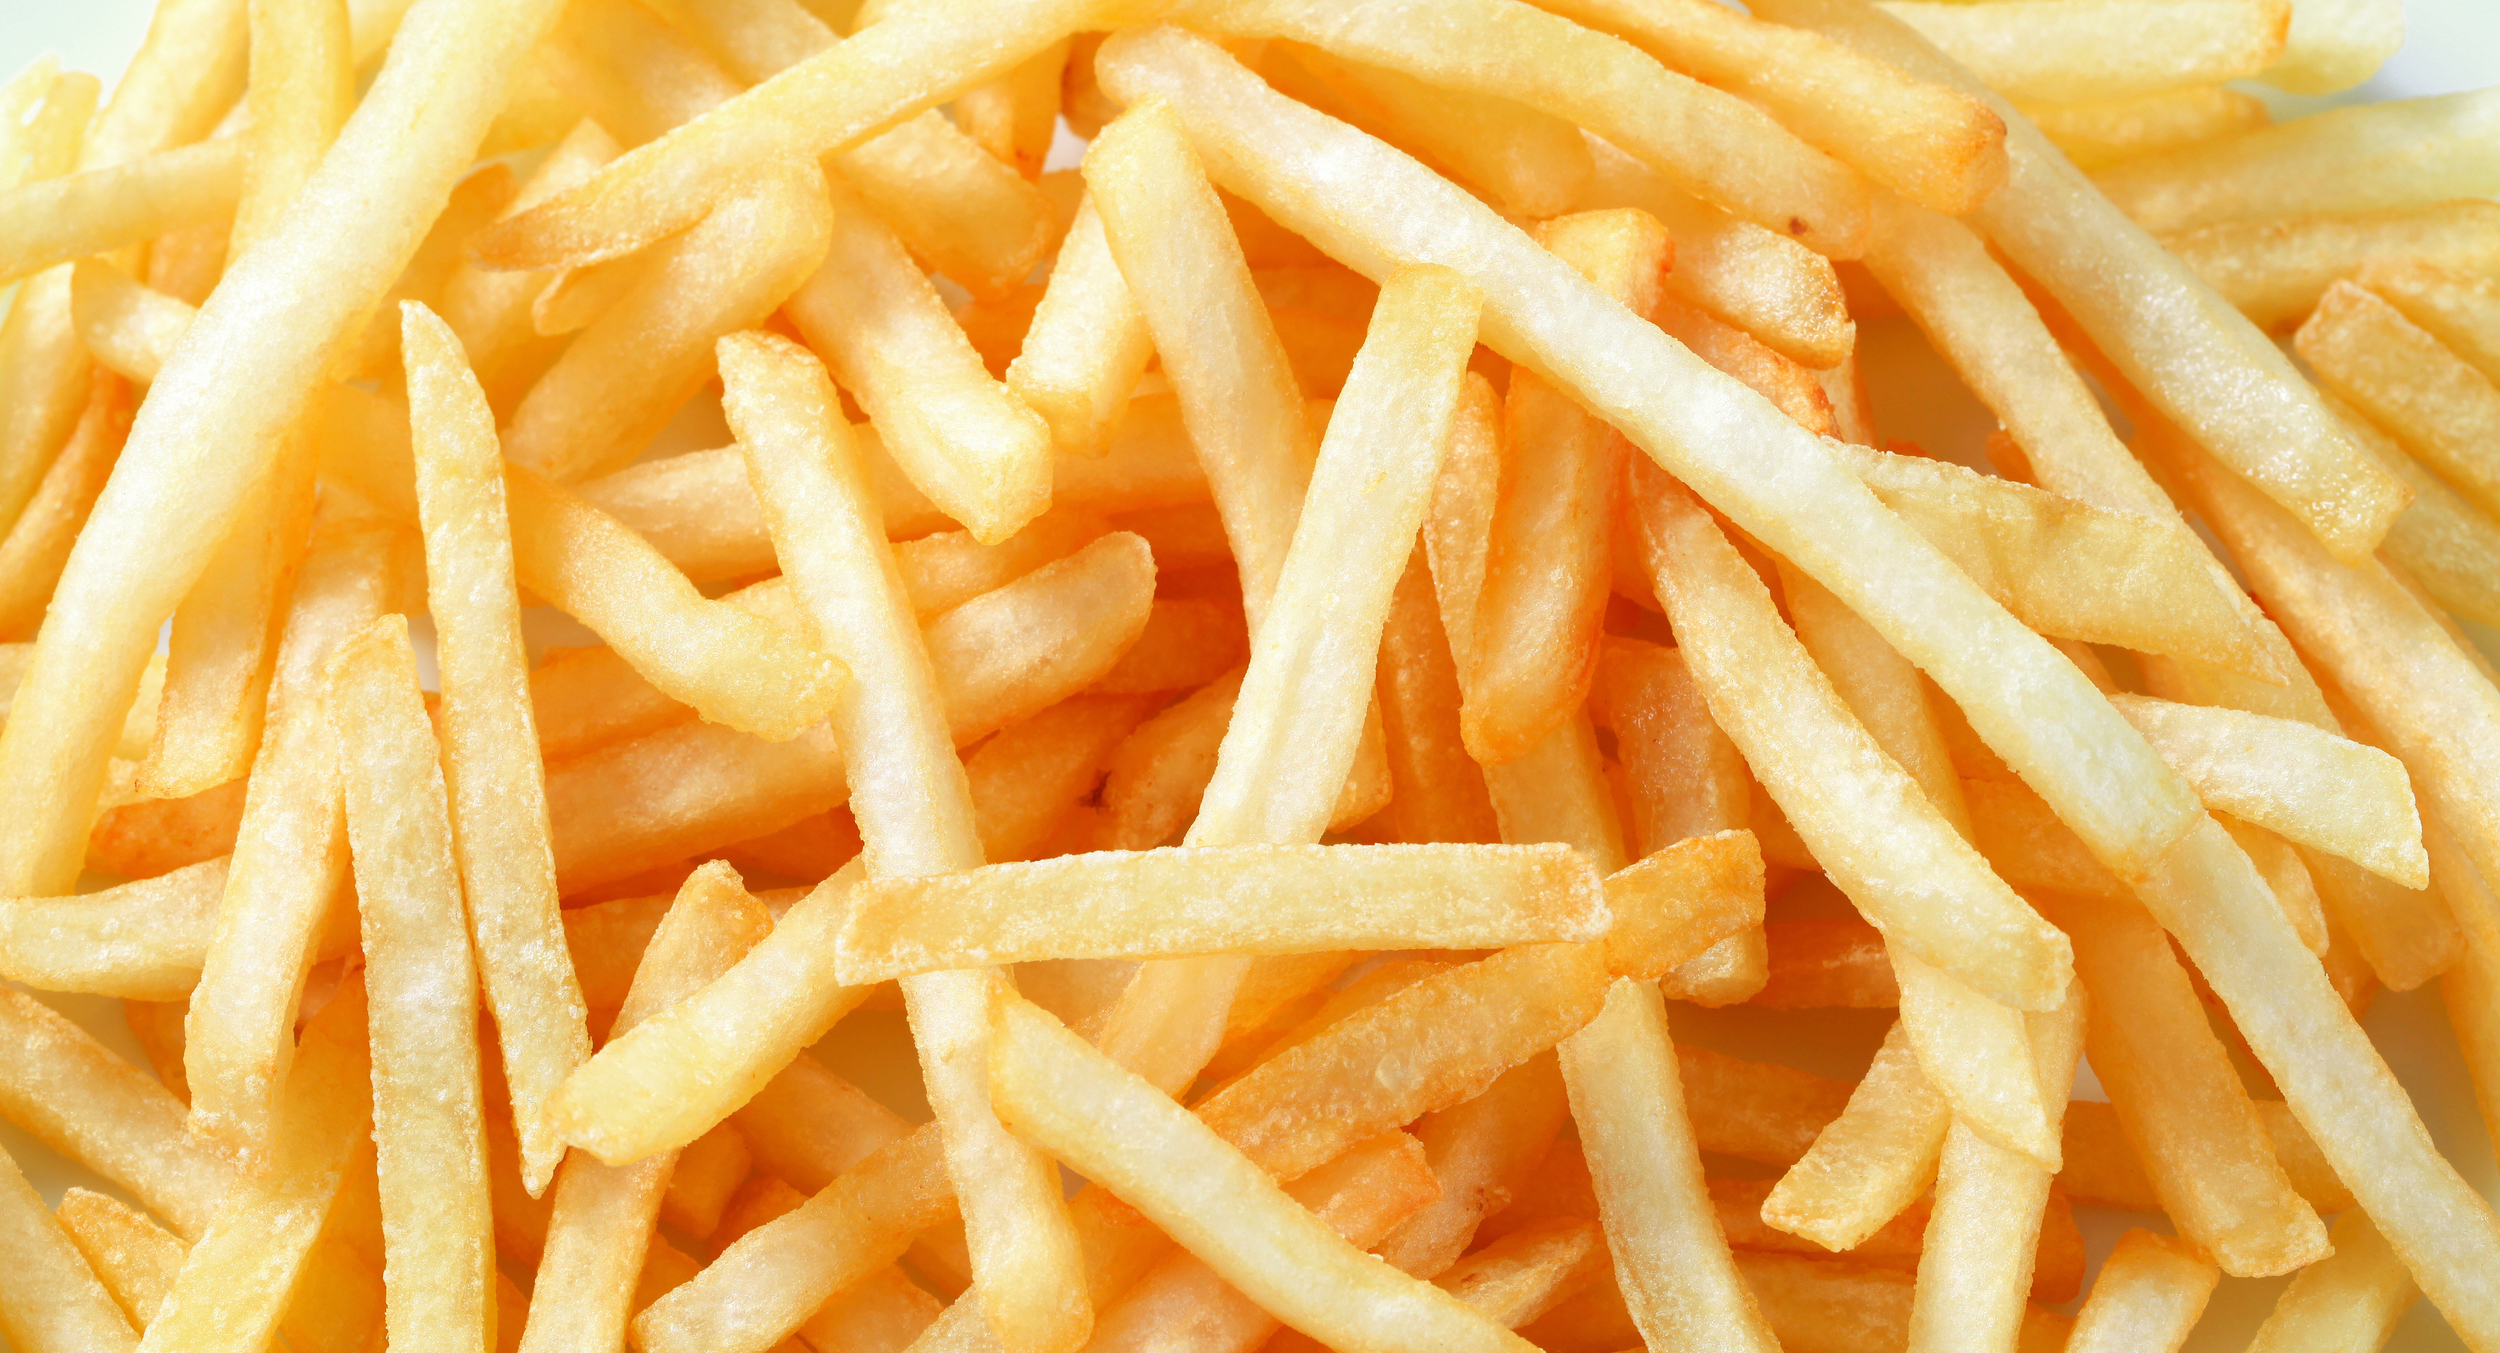 Theme of the day:another name for french fries